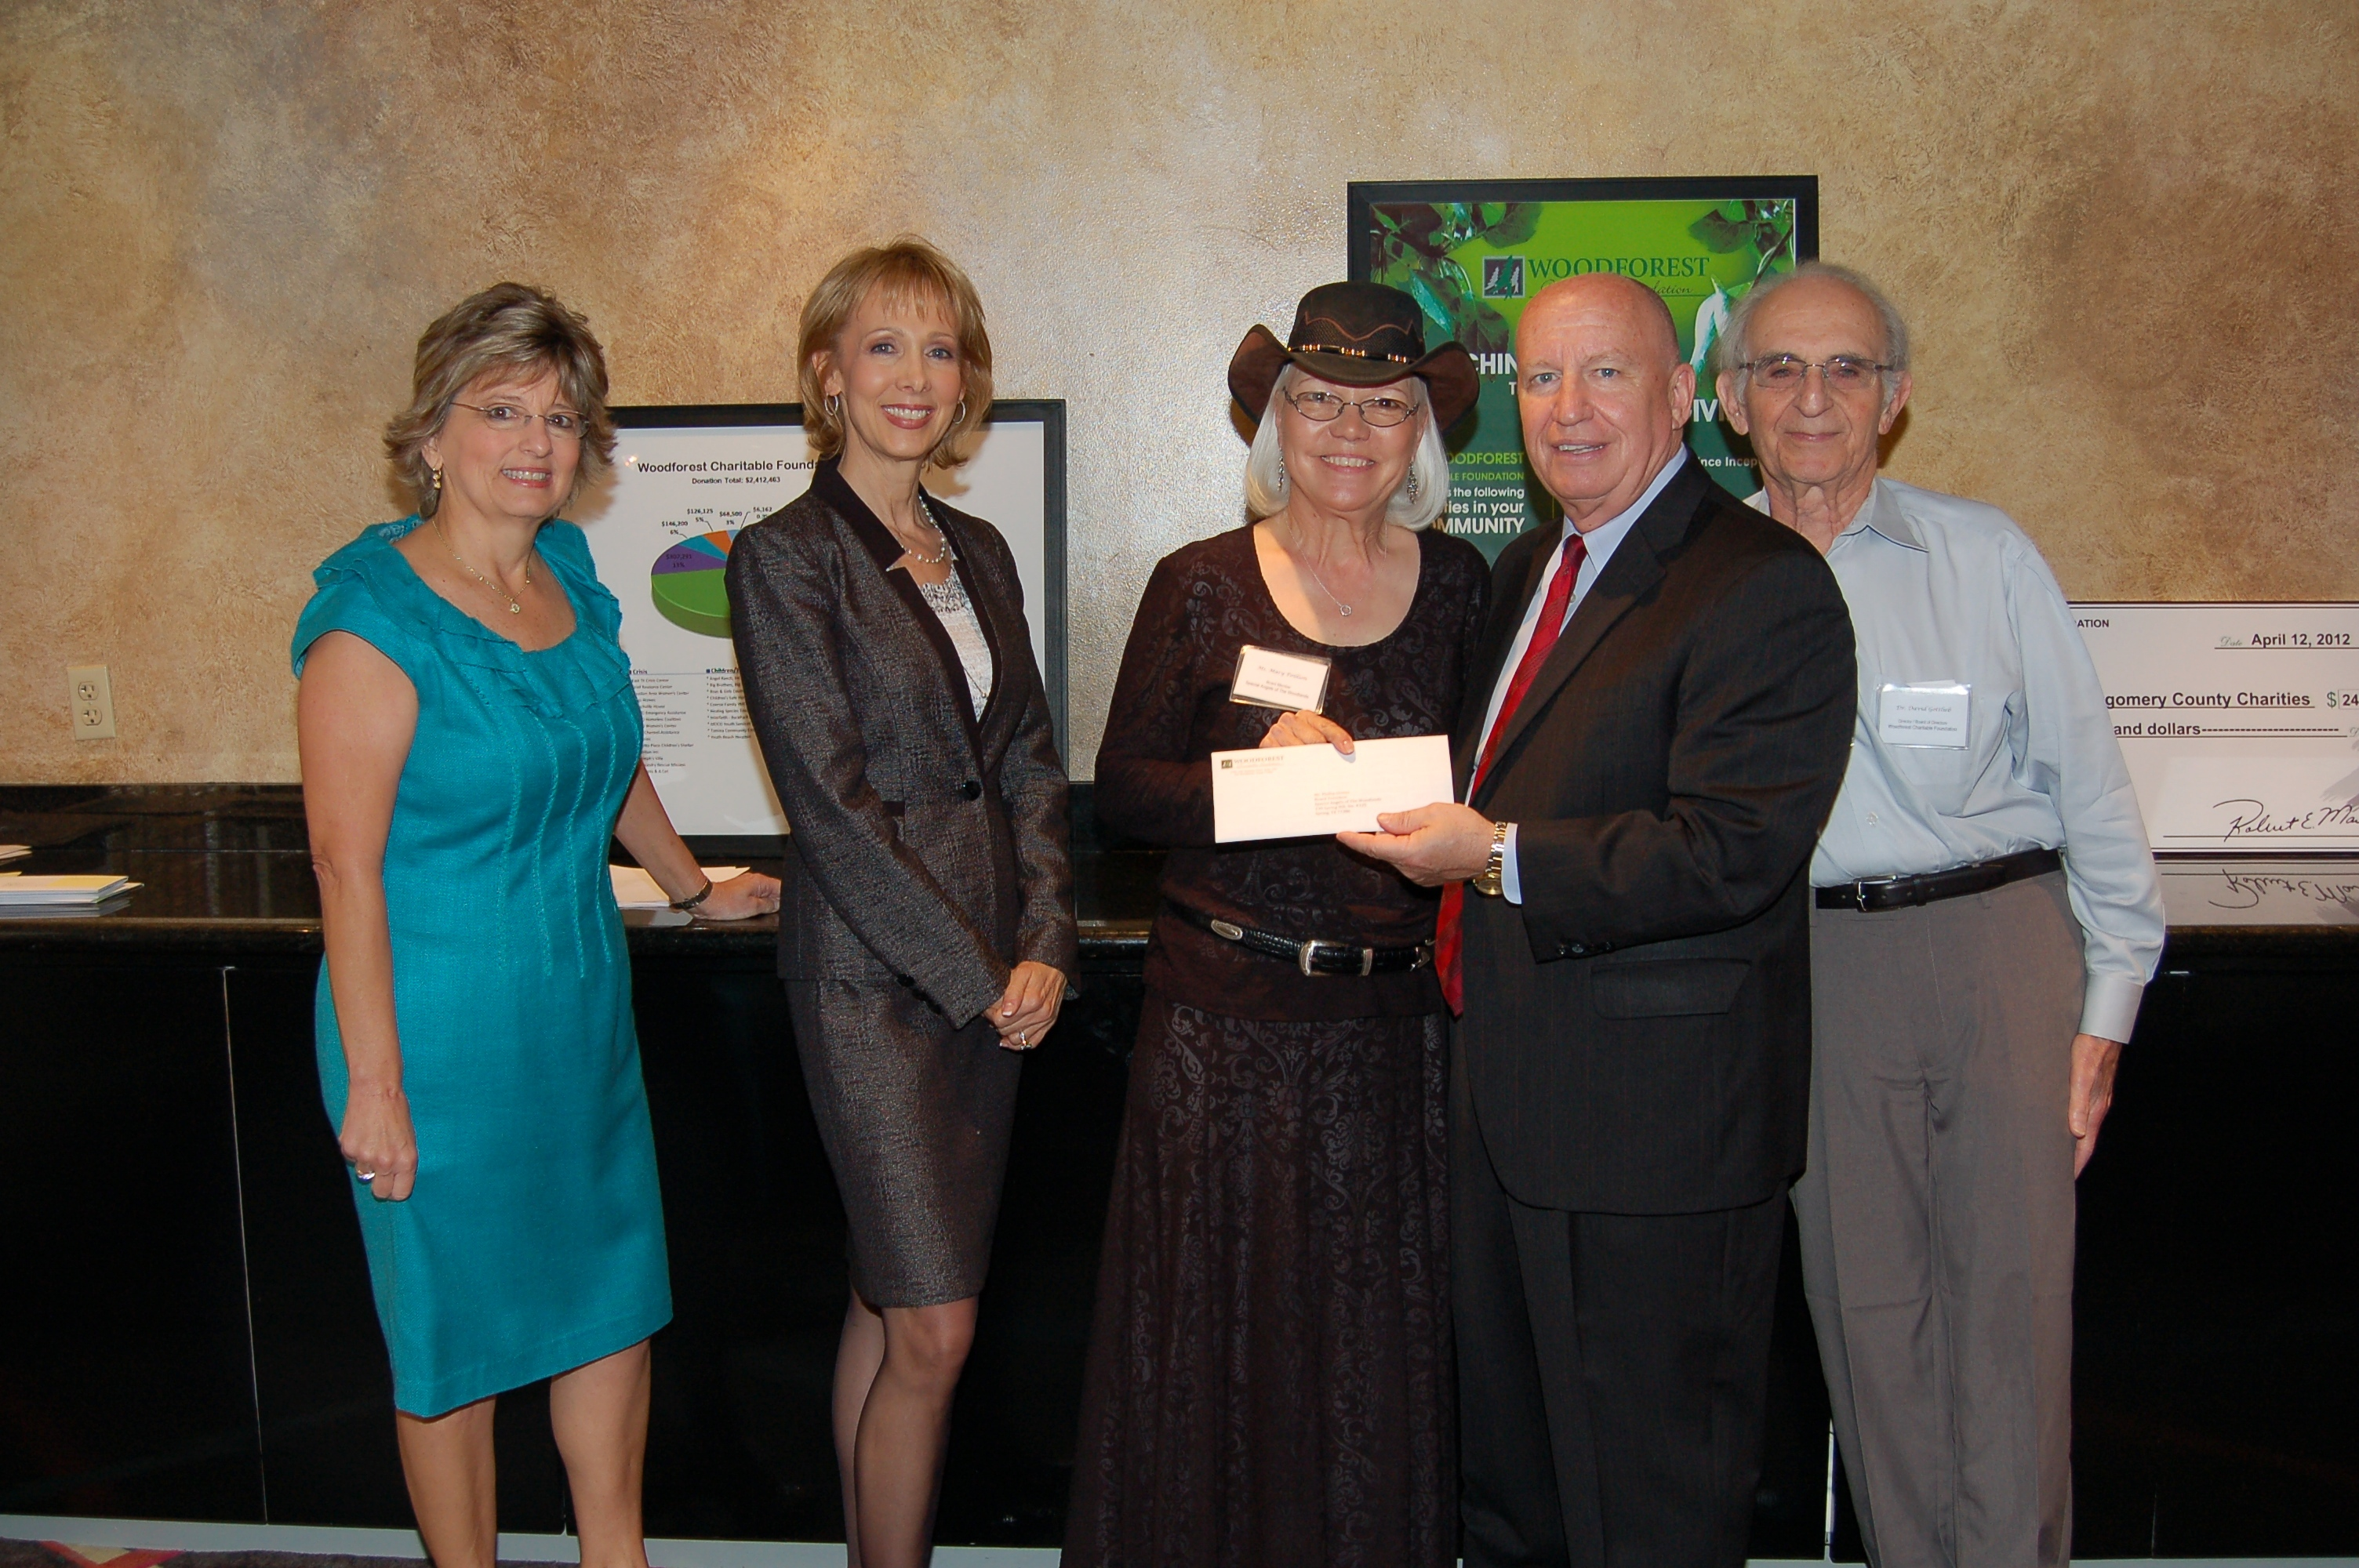 Special Angels of The Woodlands receives $5,000 donation from Woodforest Charitable Foundation.